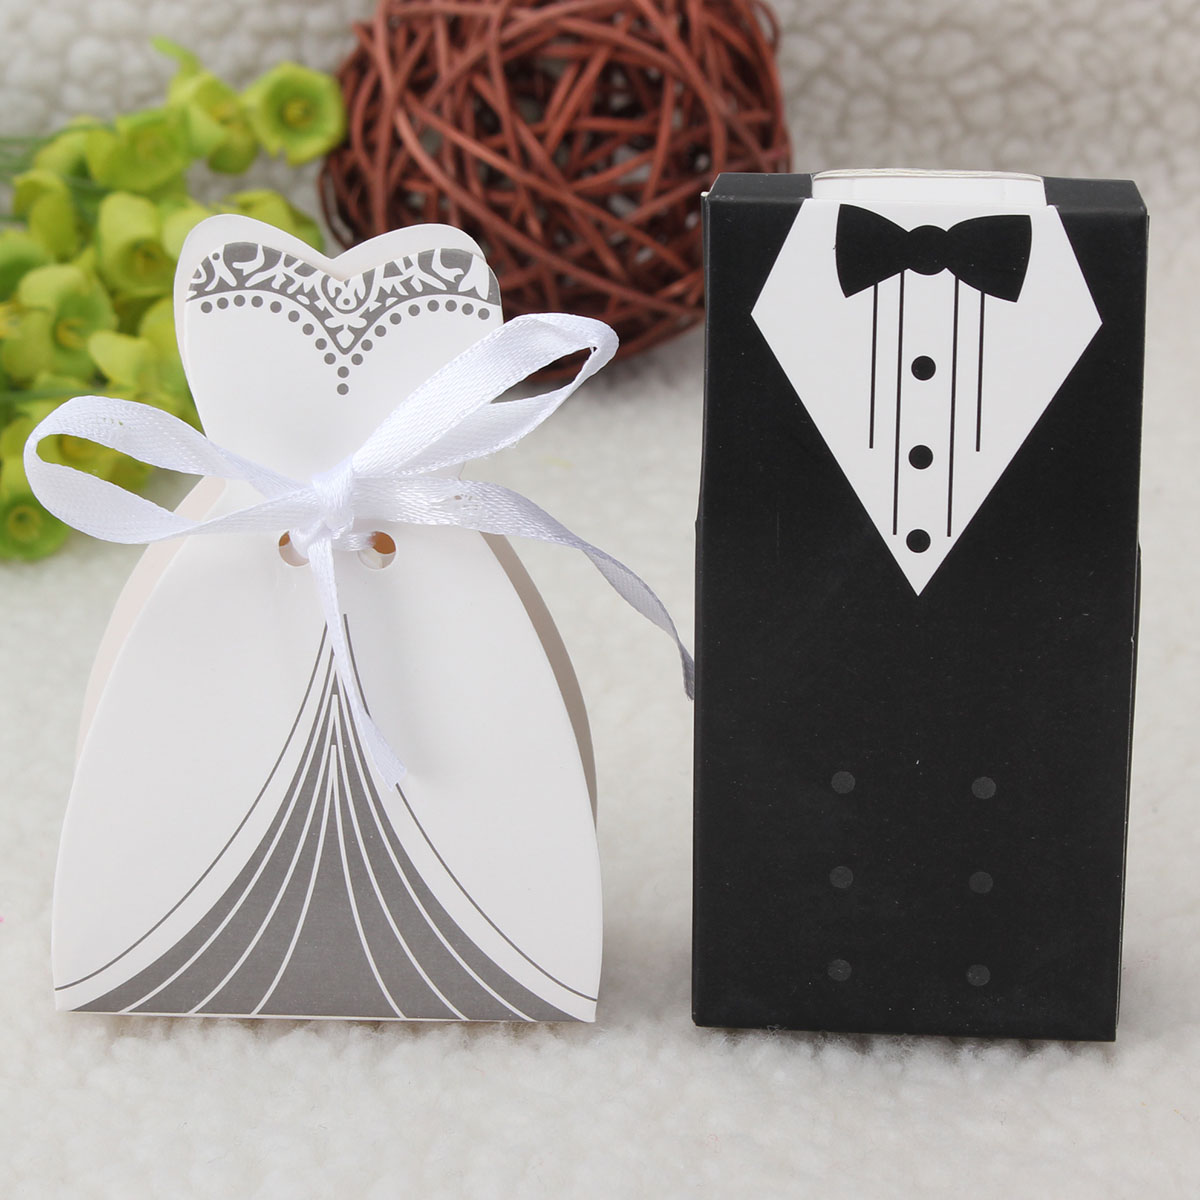 100pcs Wedding Favor Candy Box Bride Bride Groom Formal Dress Couple Invitation Gift Accessories